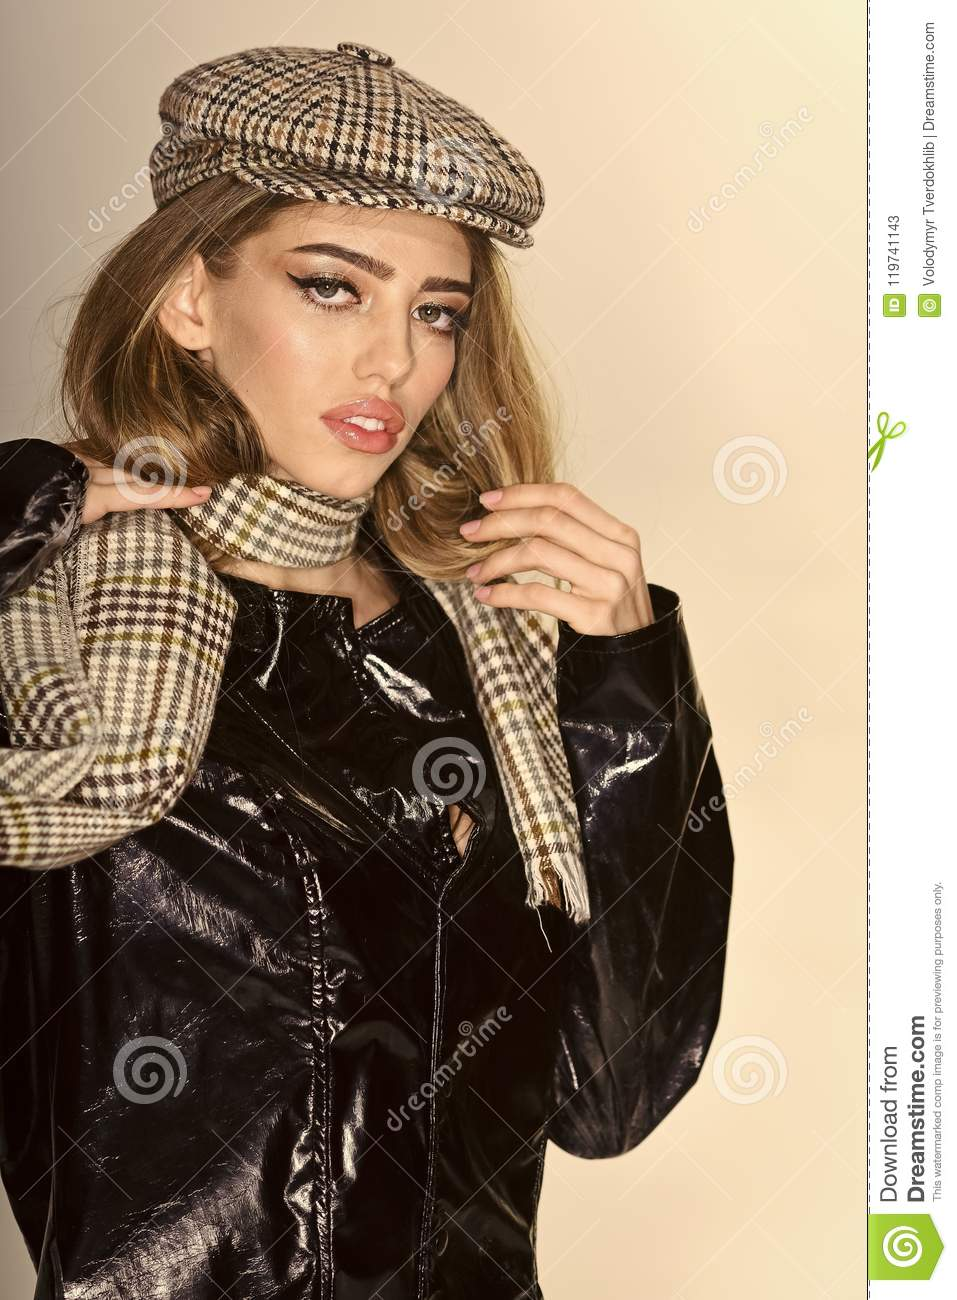 a6689a5152b lady in fashionable outfit. Fashion accessories concept. Girl with long hair  and make up wears black cloak